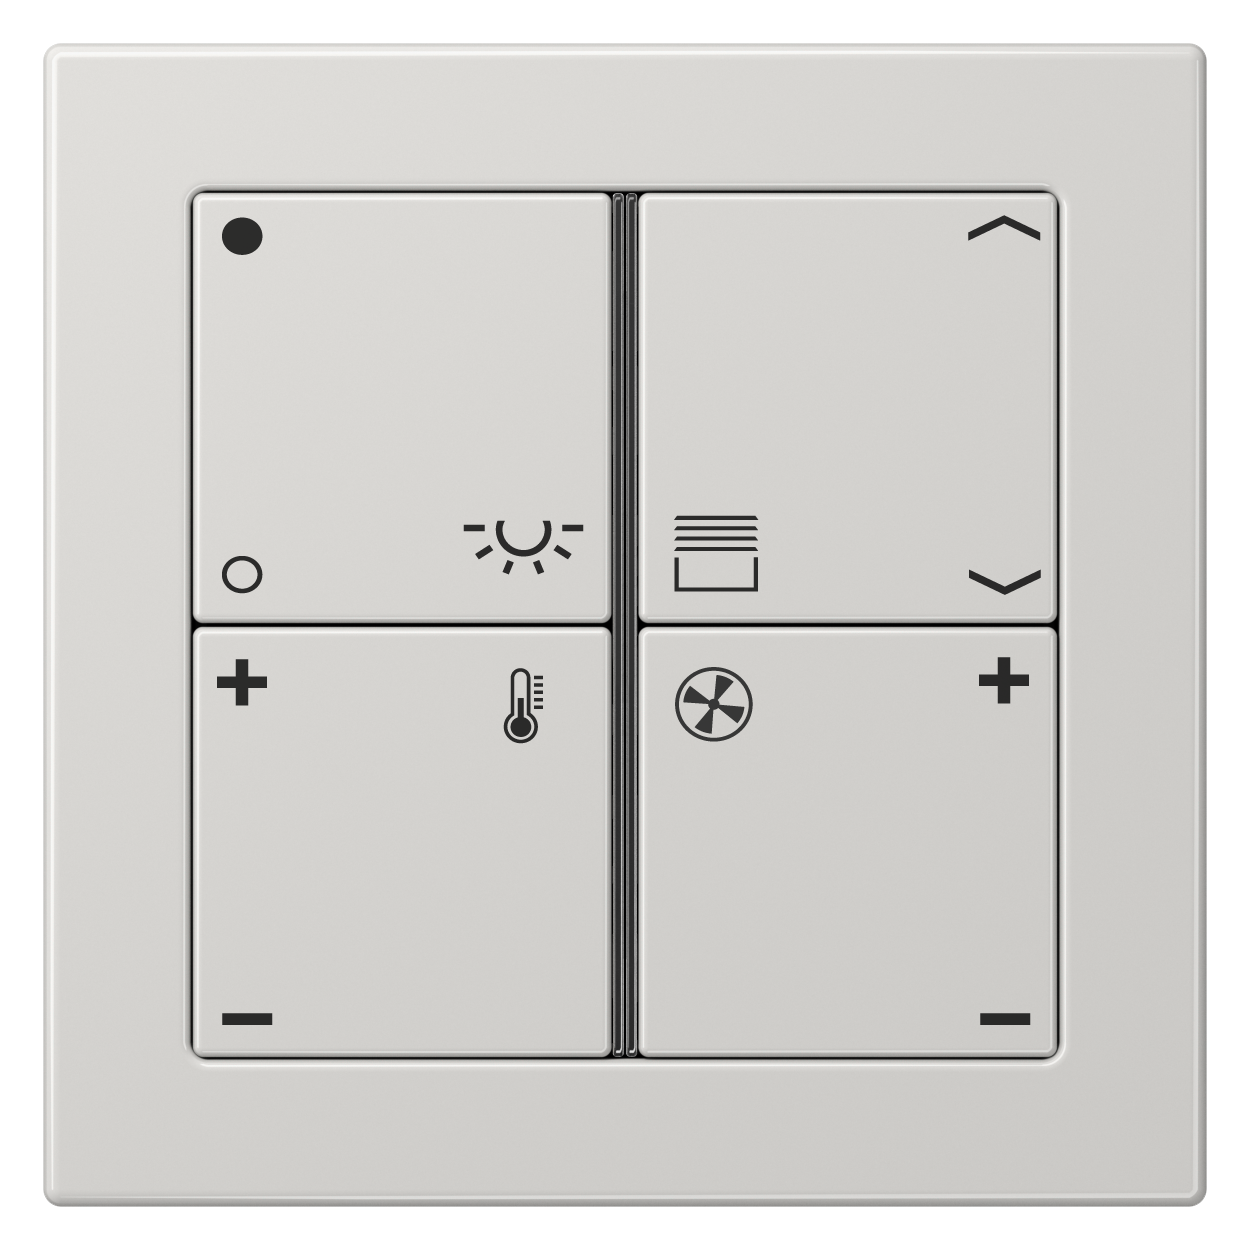 JUNG_Flat_Design_light-grey_4button_symbols